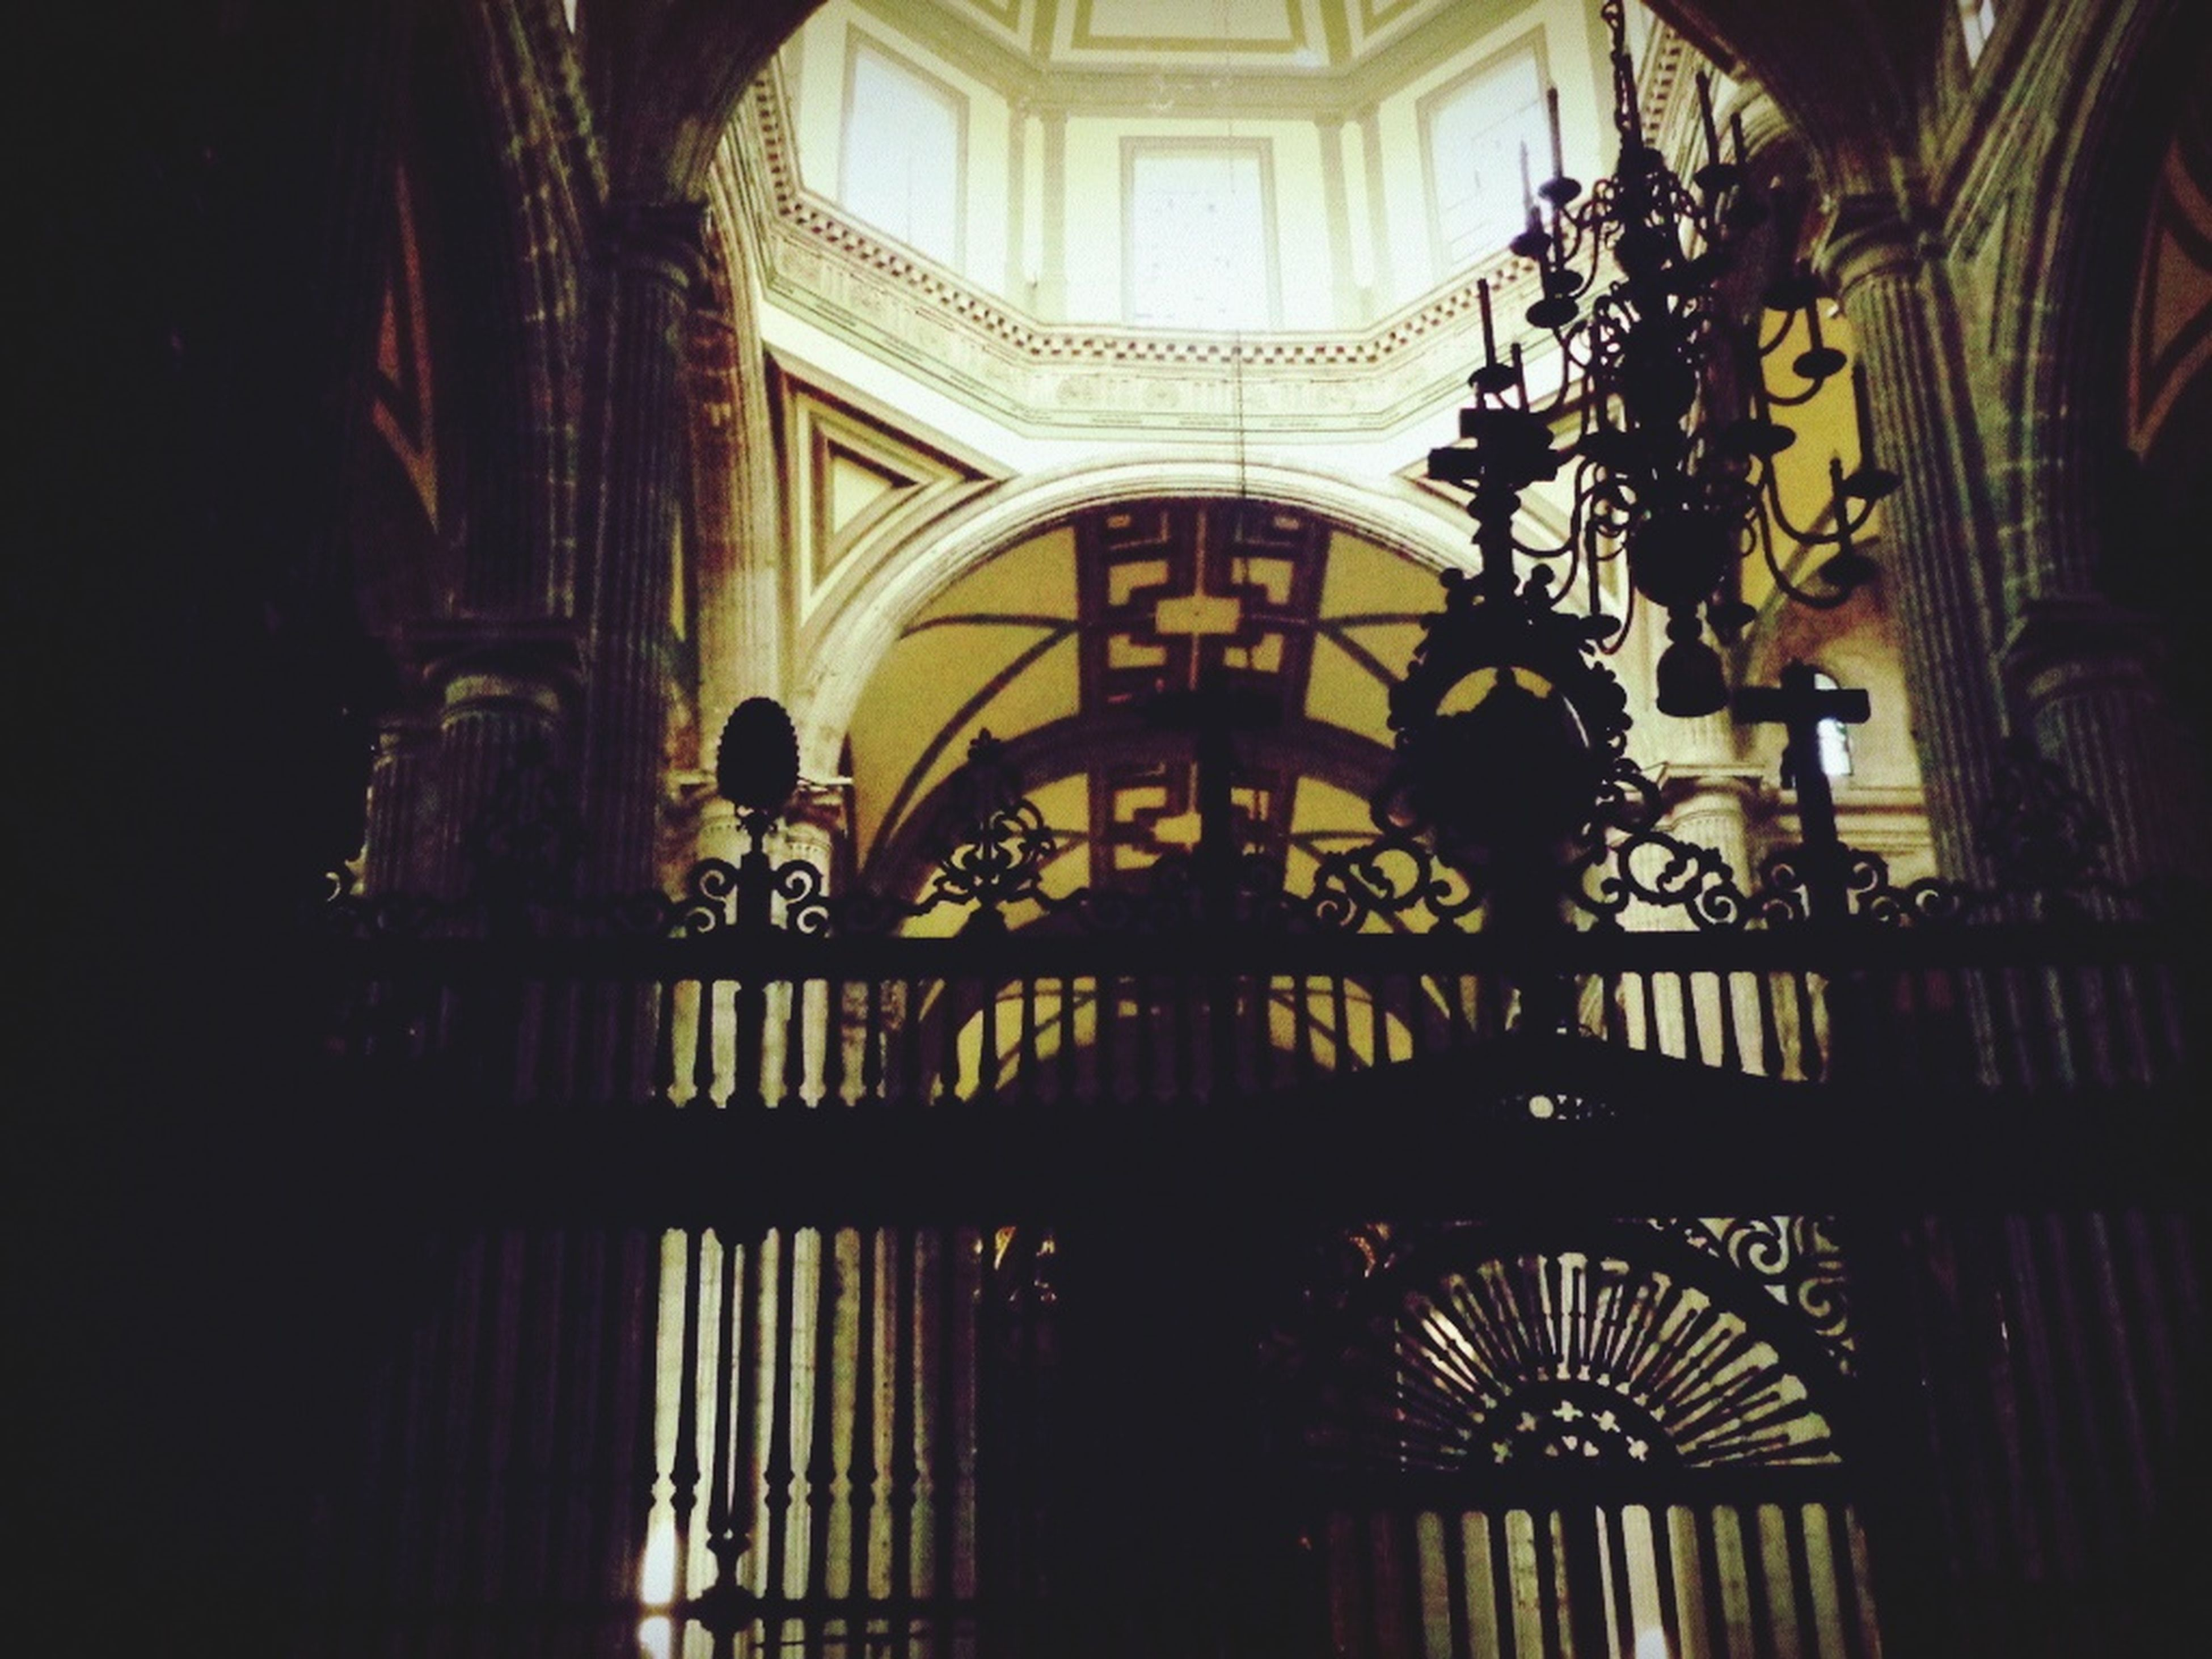 indoors, architecture, built structure, arch, ceiling, railing, window, silhouette, place of worship, men, low angle view, church, travel, religion, incidental people, interior, person, chandelier, day